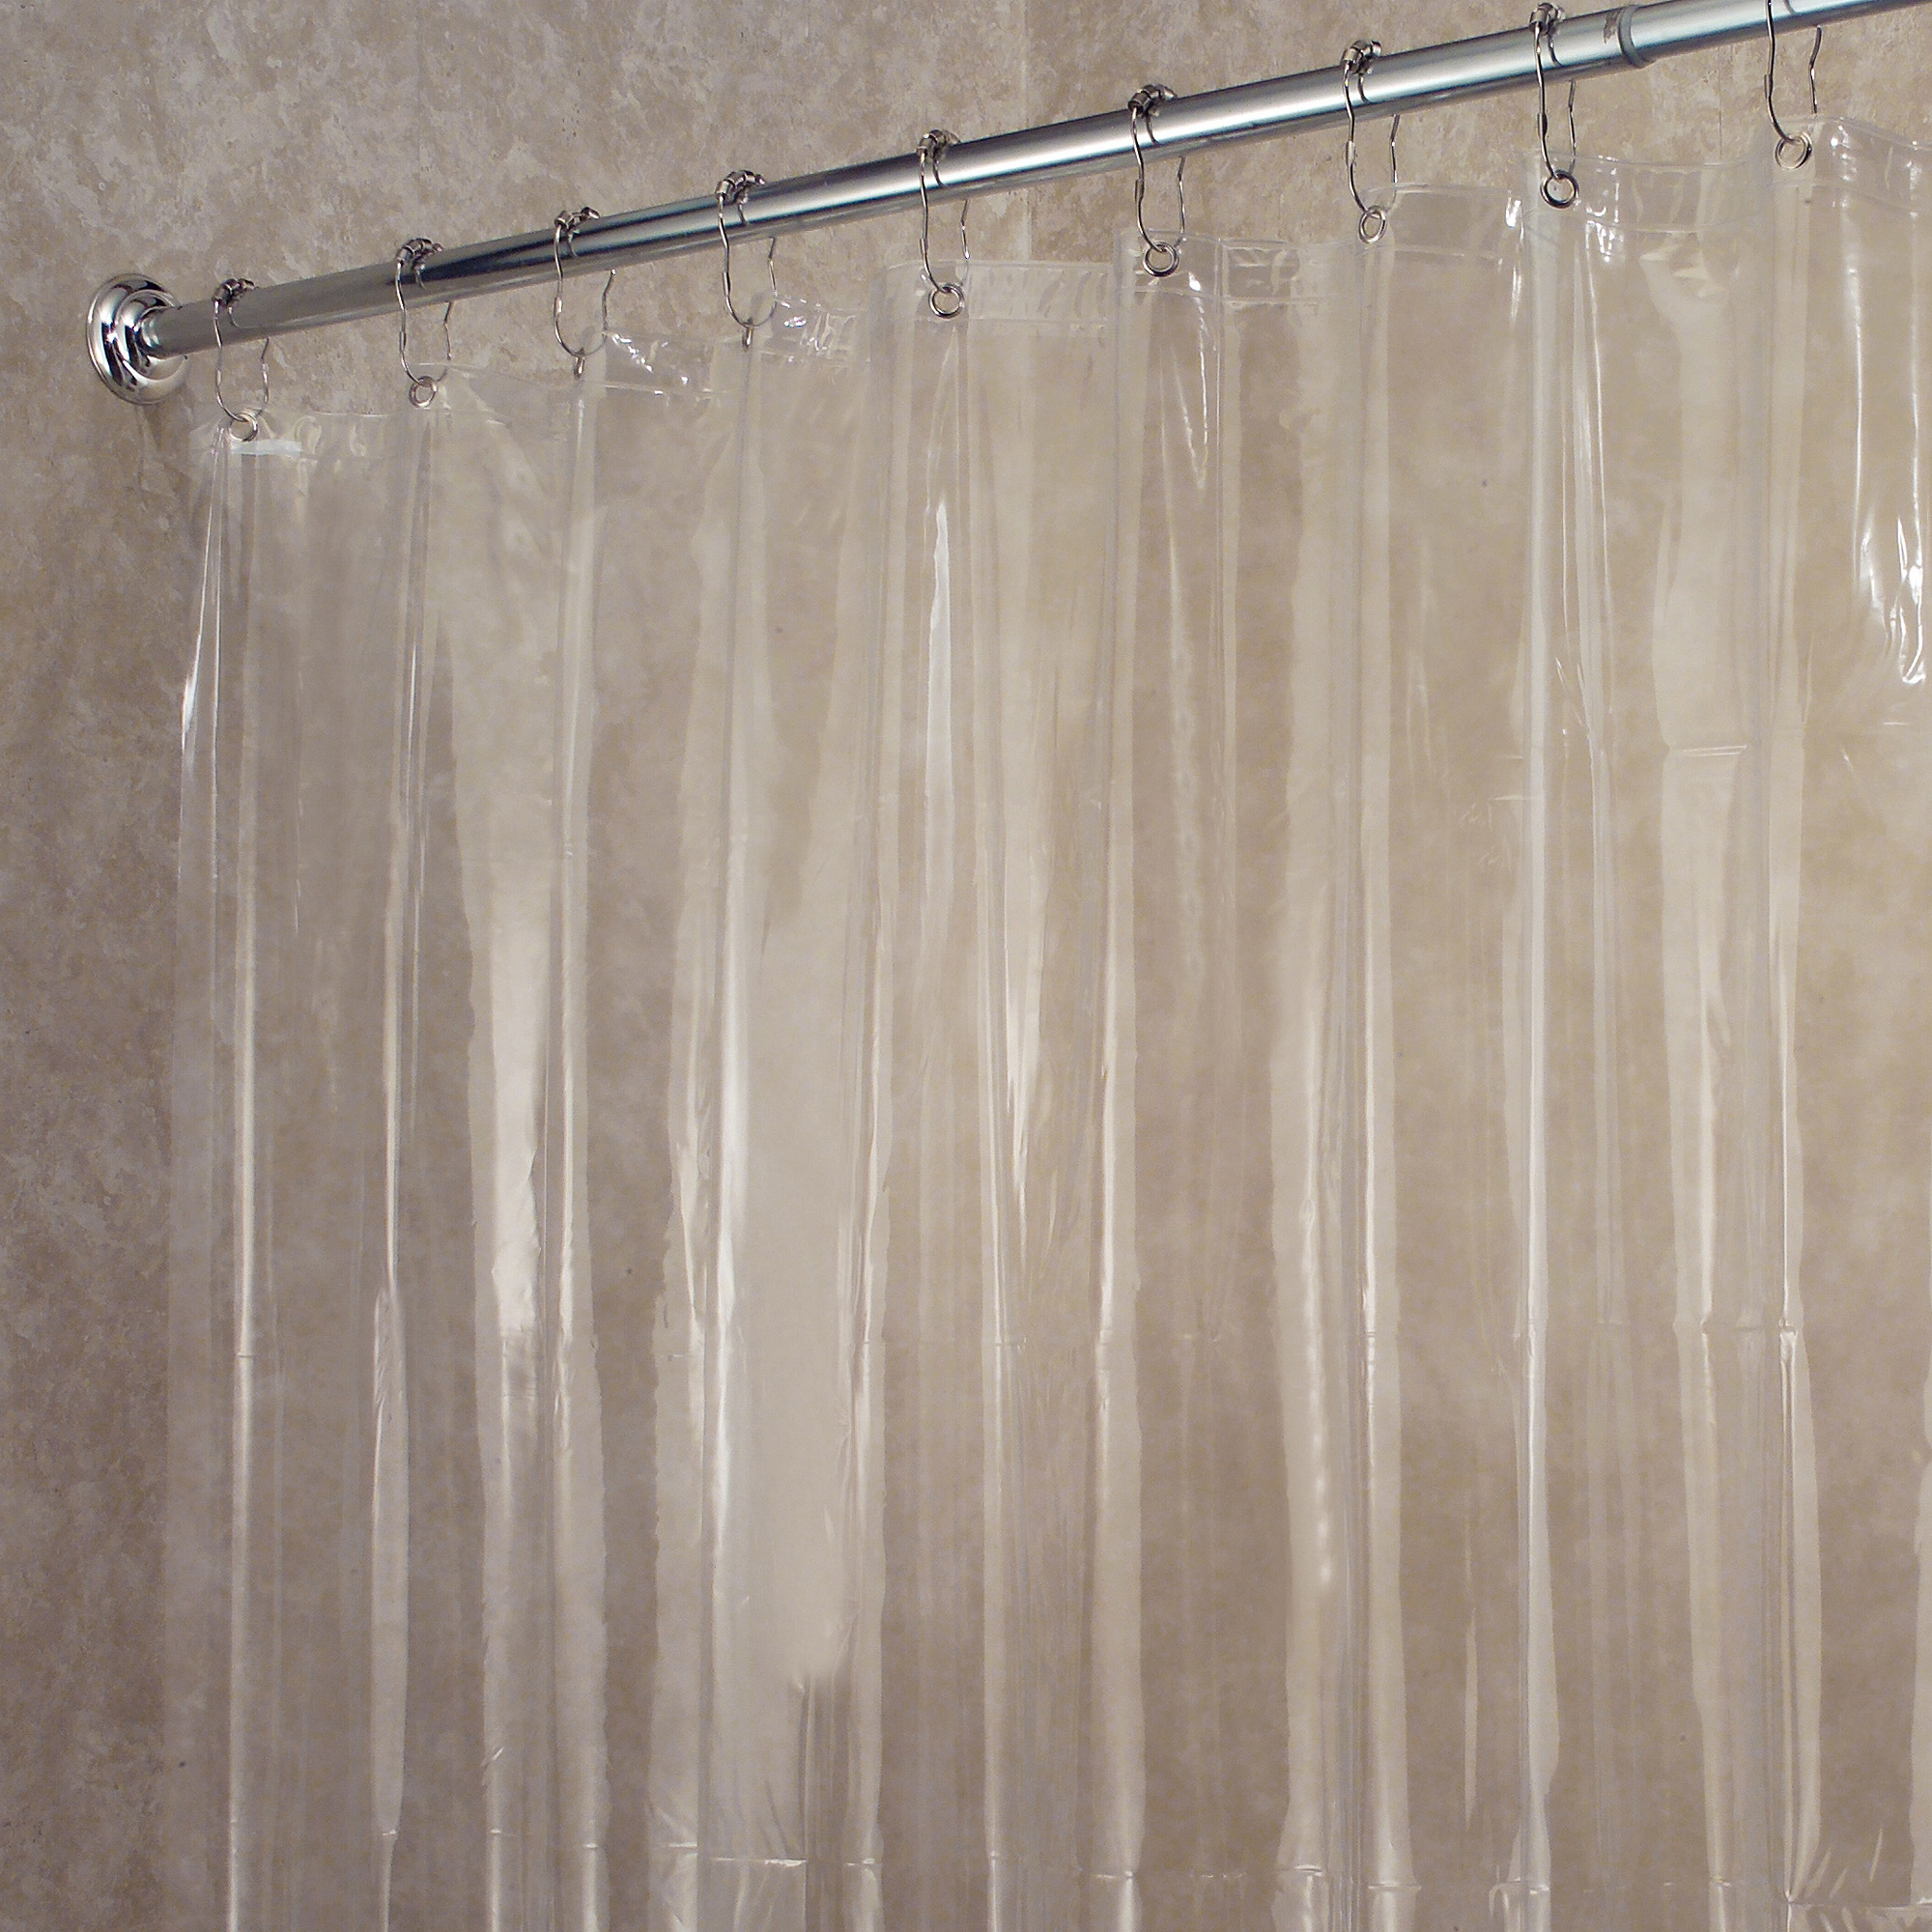 Extra Large Clear Eva Vinyl Shower Curtain Liner • Shower Curtains ...